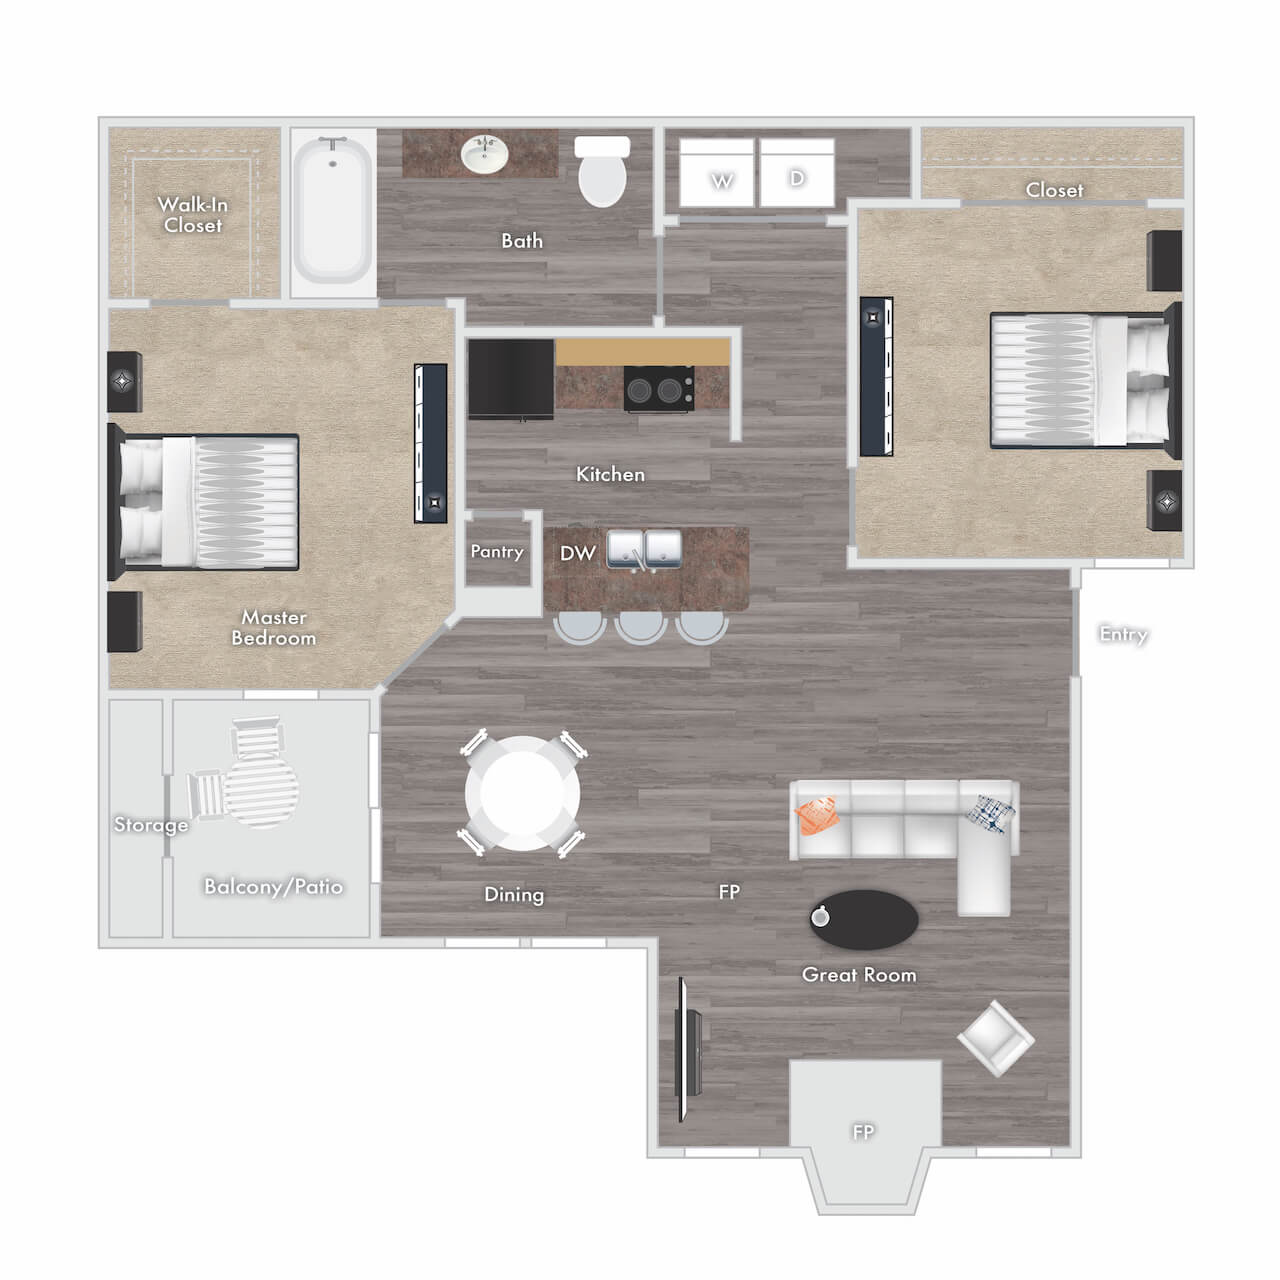 Raleigh floor plan - 1 bed 1 bath with fireplace, balcony and storage